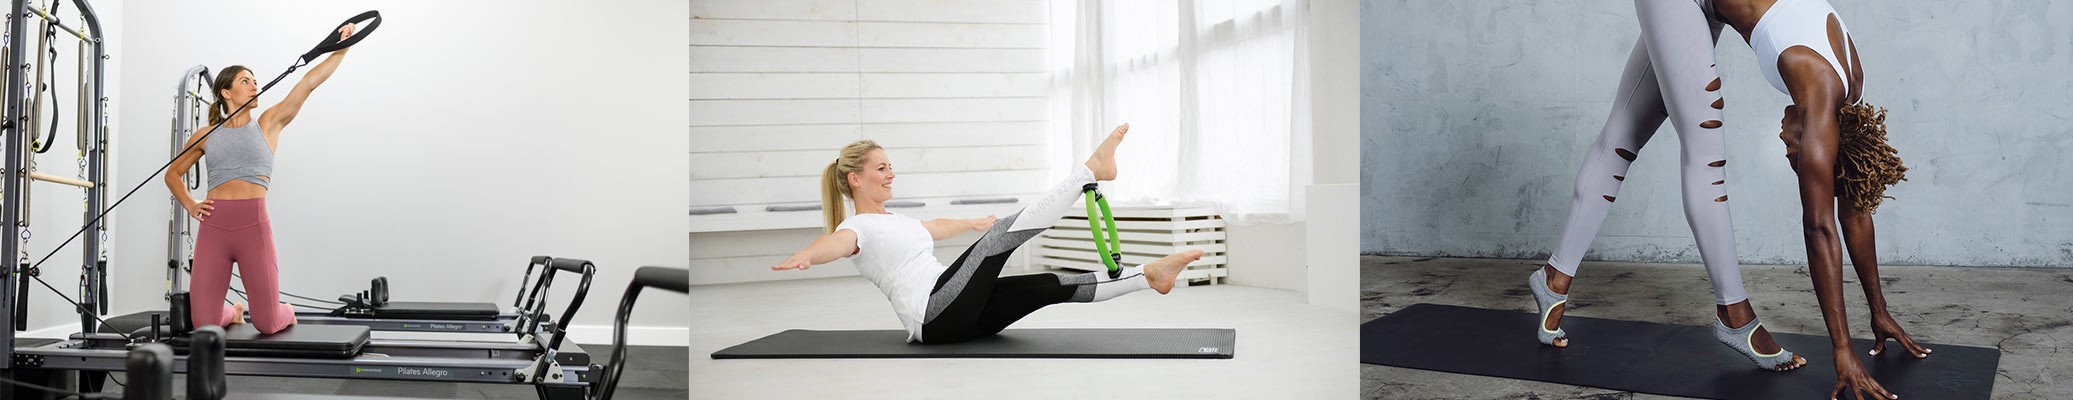 Exercice Allegro - Mise en situation pilates circle compact - Utilisation chaussettes